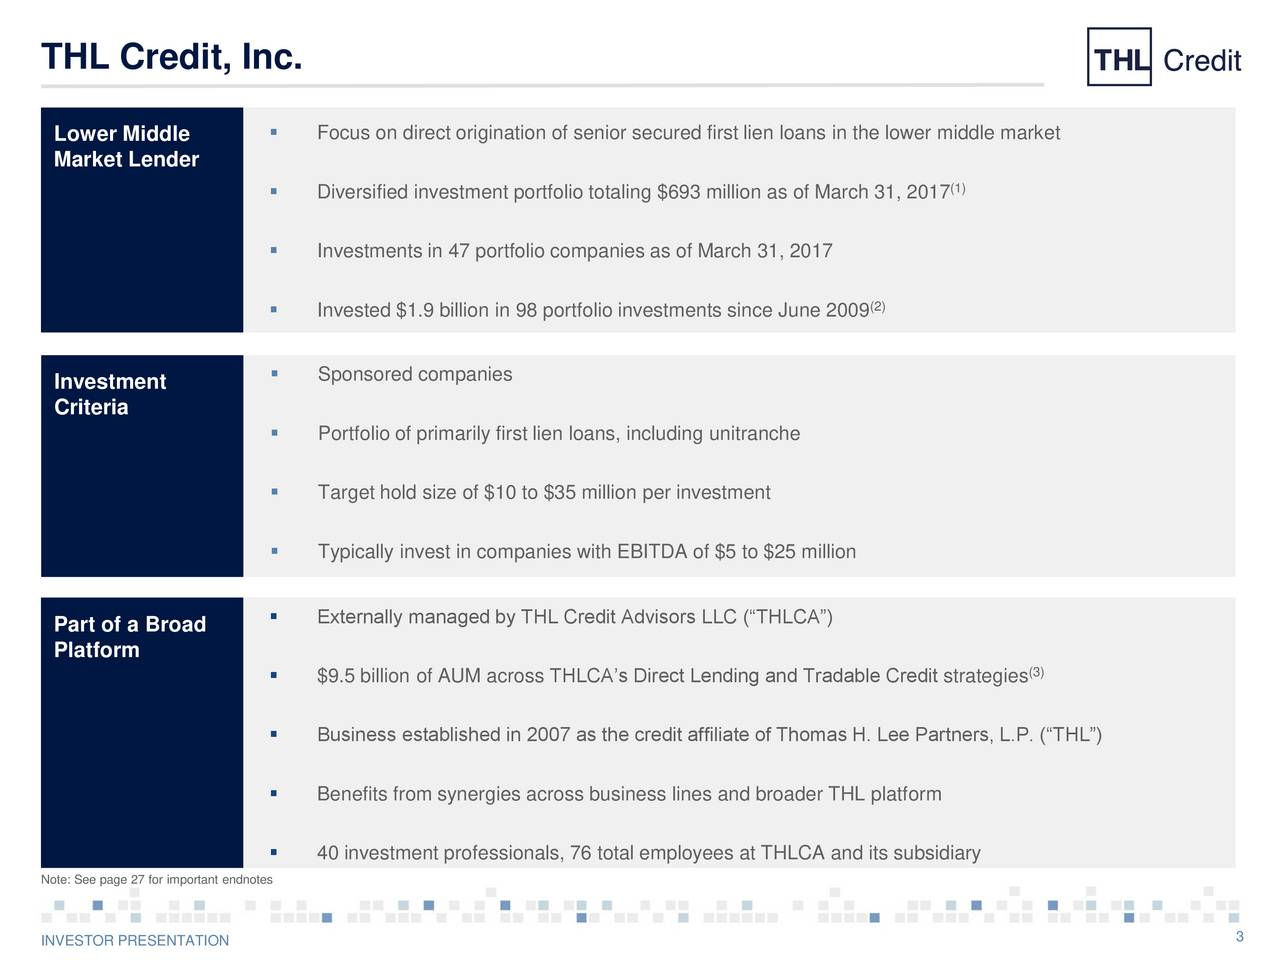 Lower Middle  Focus on direct origination of senior secured first lien loans in the lower middle market Market Lender Diversified investment portfolio totaling $693 million as of March 31, 20171) Investments in 47 portfolio companies as of March 31, 2017 Invested $1.9 billion in 98 portfolio investments since June 2009(2) Investment  Sponsored companies Criteria Portfolio of primarily first lien loans, including unitranche Target hold size of $10 to $35 million per investment Typically invest in companies with EBITDA of $5 to $25 million Externally managed by THL Credit Advisors LLC (THLCA) Part of a Broad Platform (3) $9.5 billion of AUM across THLCAs Direct Lending and Tradable Credit strategies Business established in 2007 as the credit affiliate of Thomas H. Lee Partners, L.P. (THL) Benefits from synergies across business lines and broader THL platform 40 investment professionals, 76 total employees at THLCA and its subsidiary Note: See page 27 for important endnotes INVESTOR PRESENTATION 3